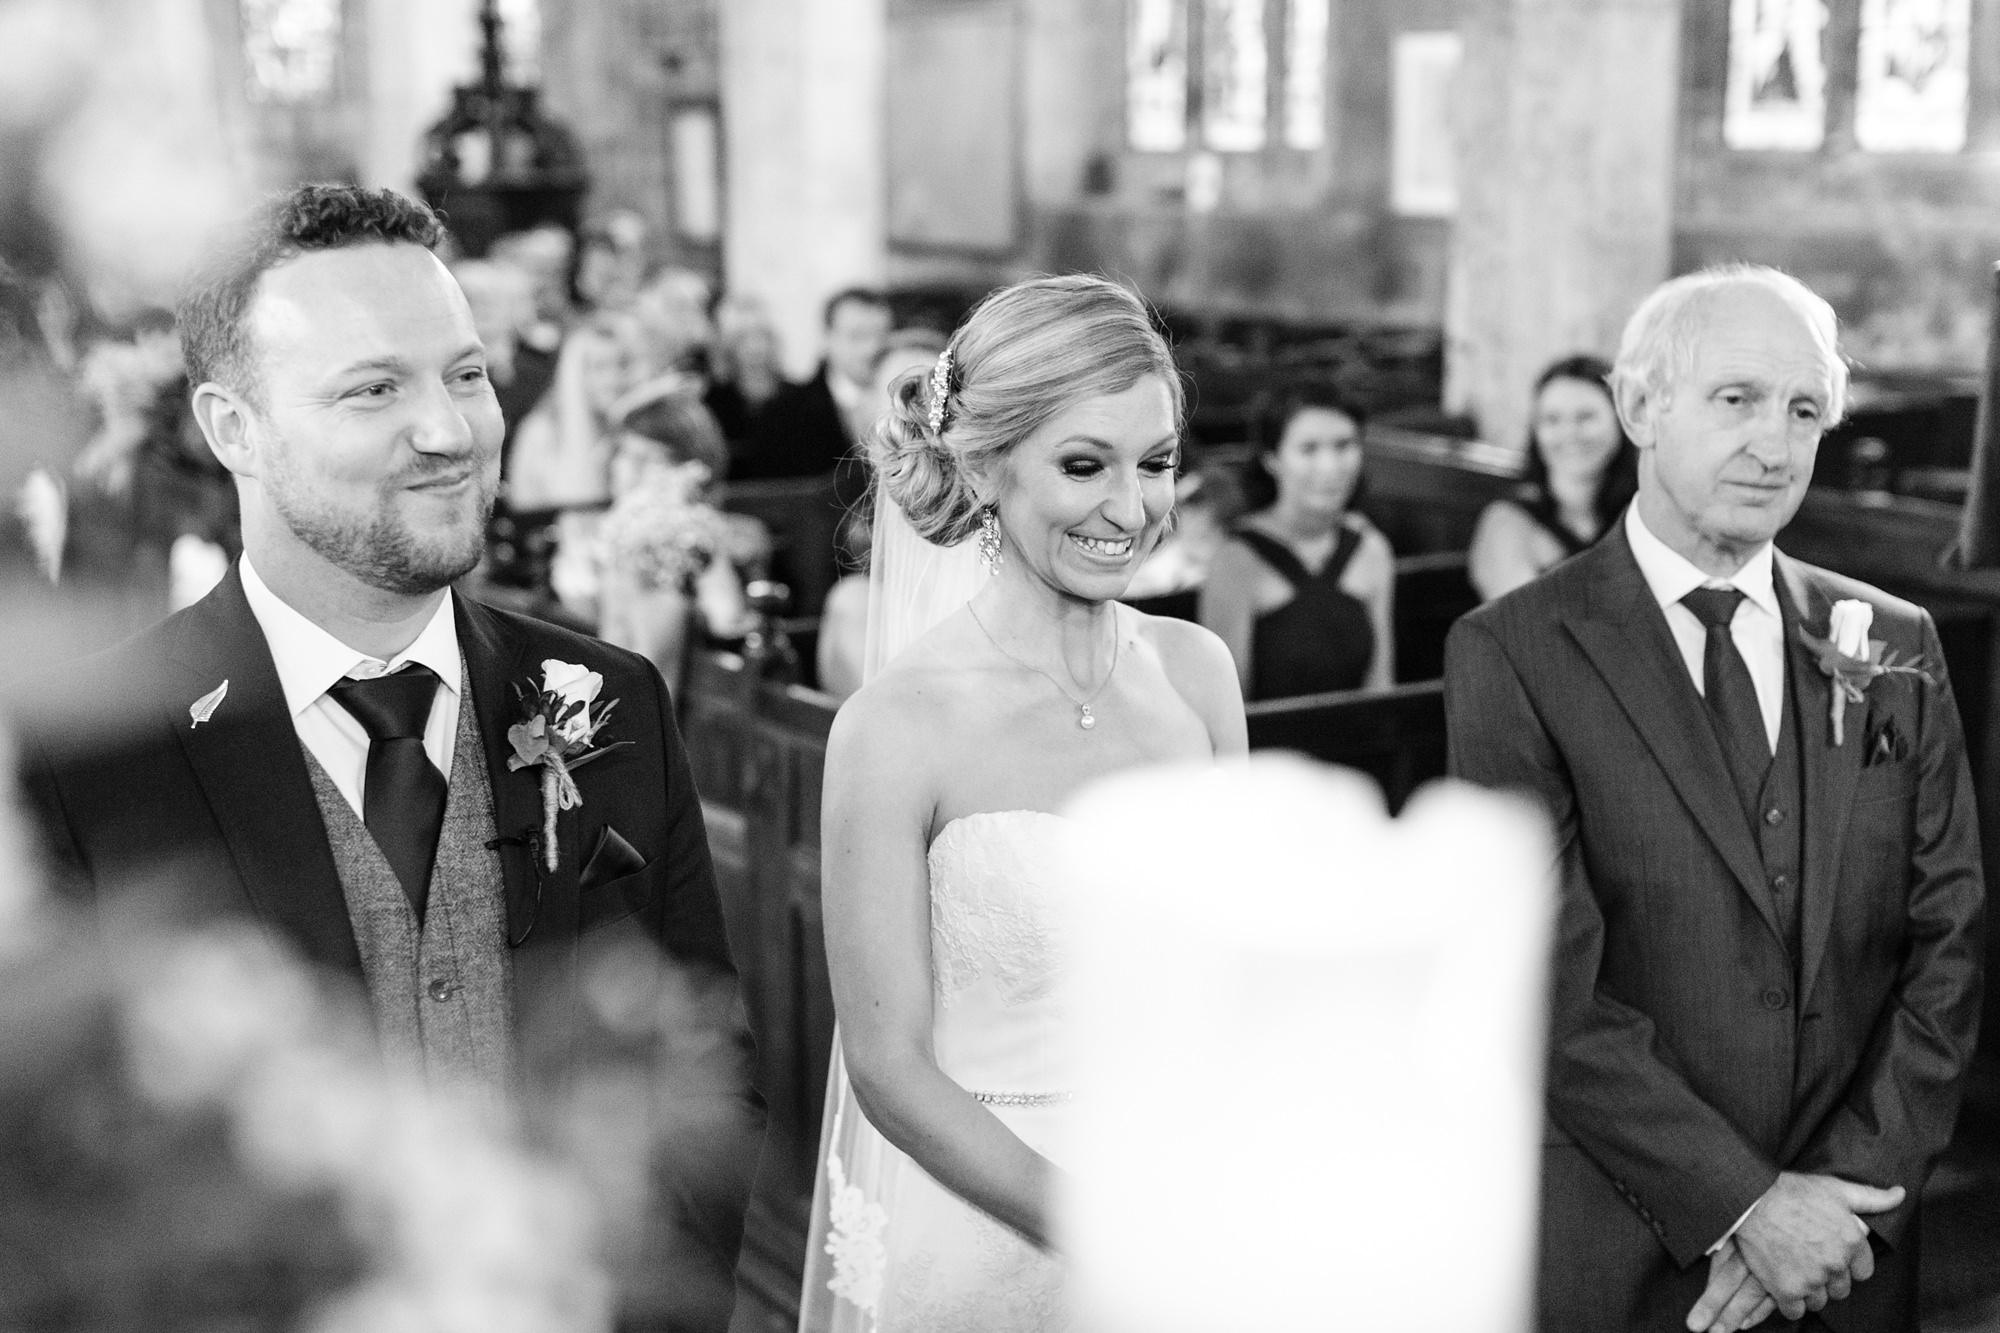 Bride smiles during ceremony at church